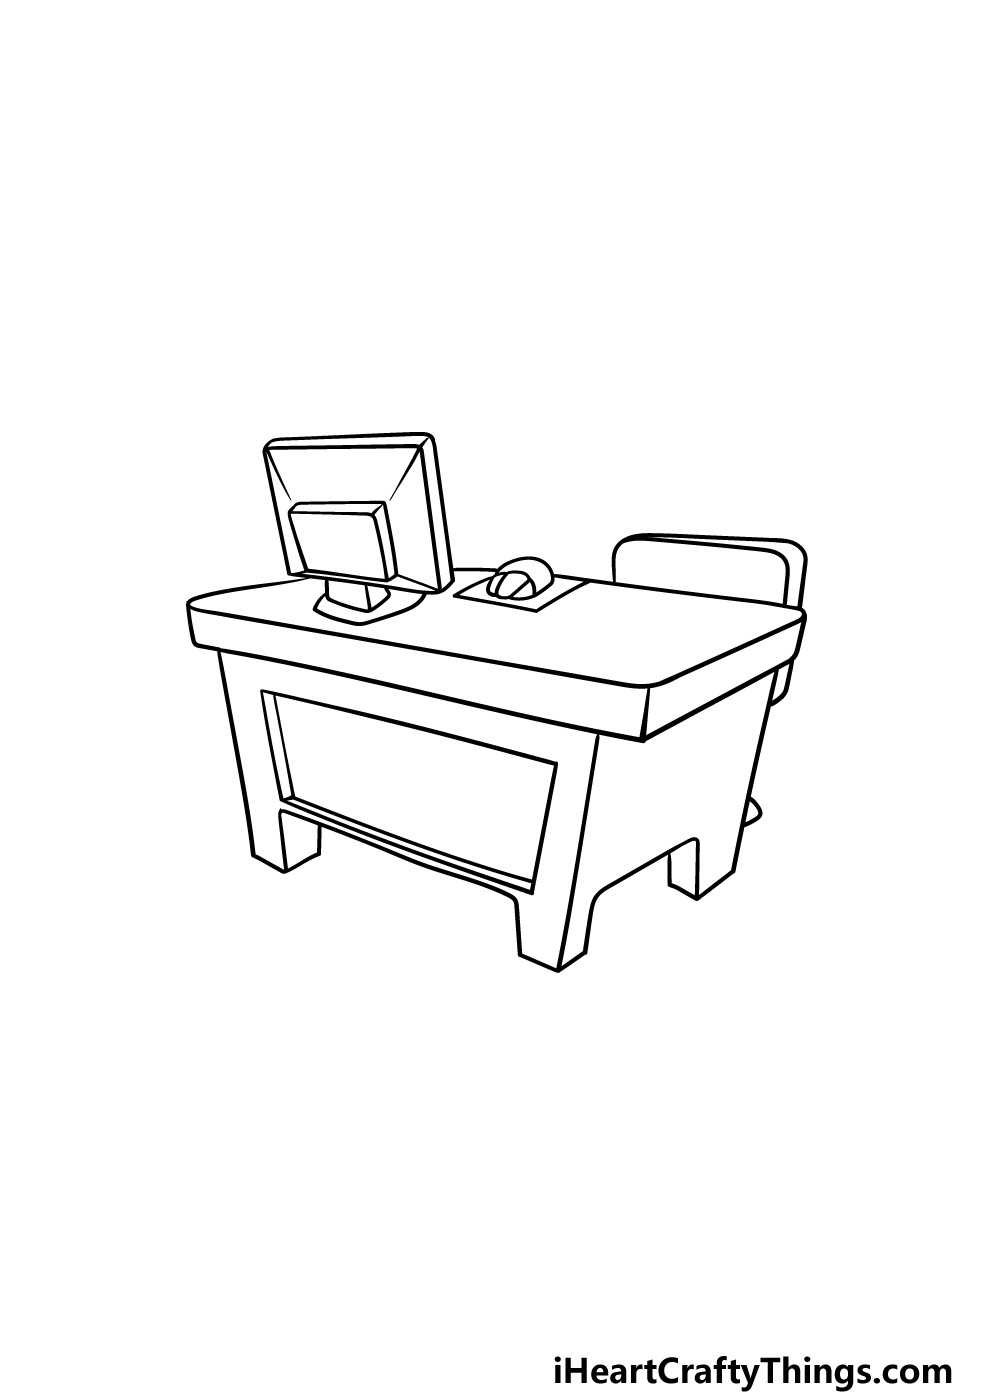 drawing a desk step 5